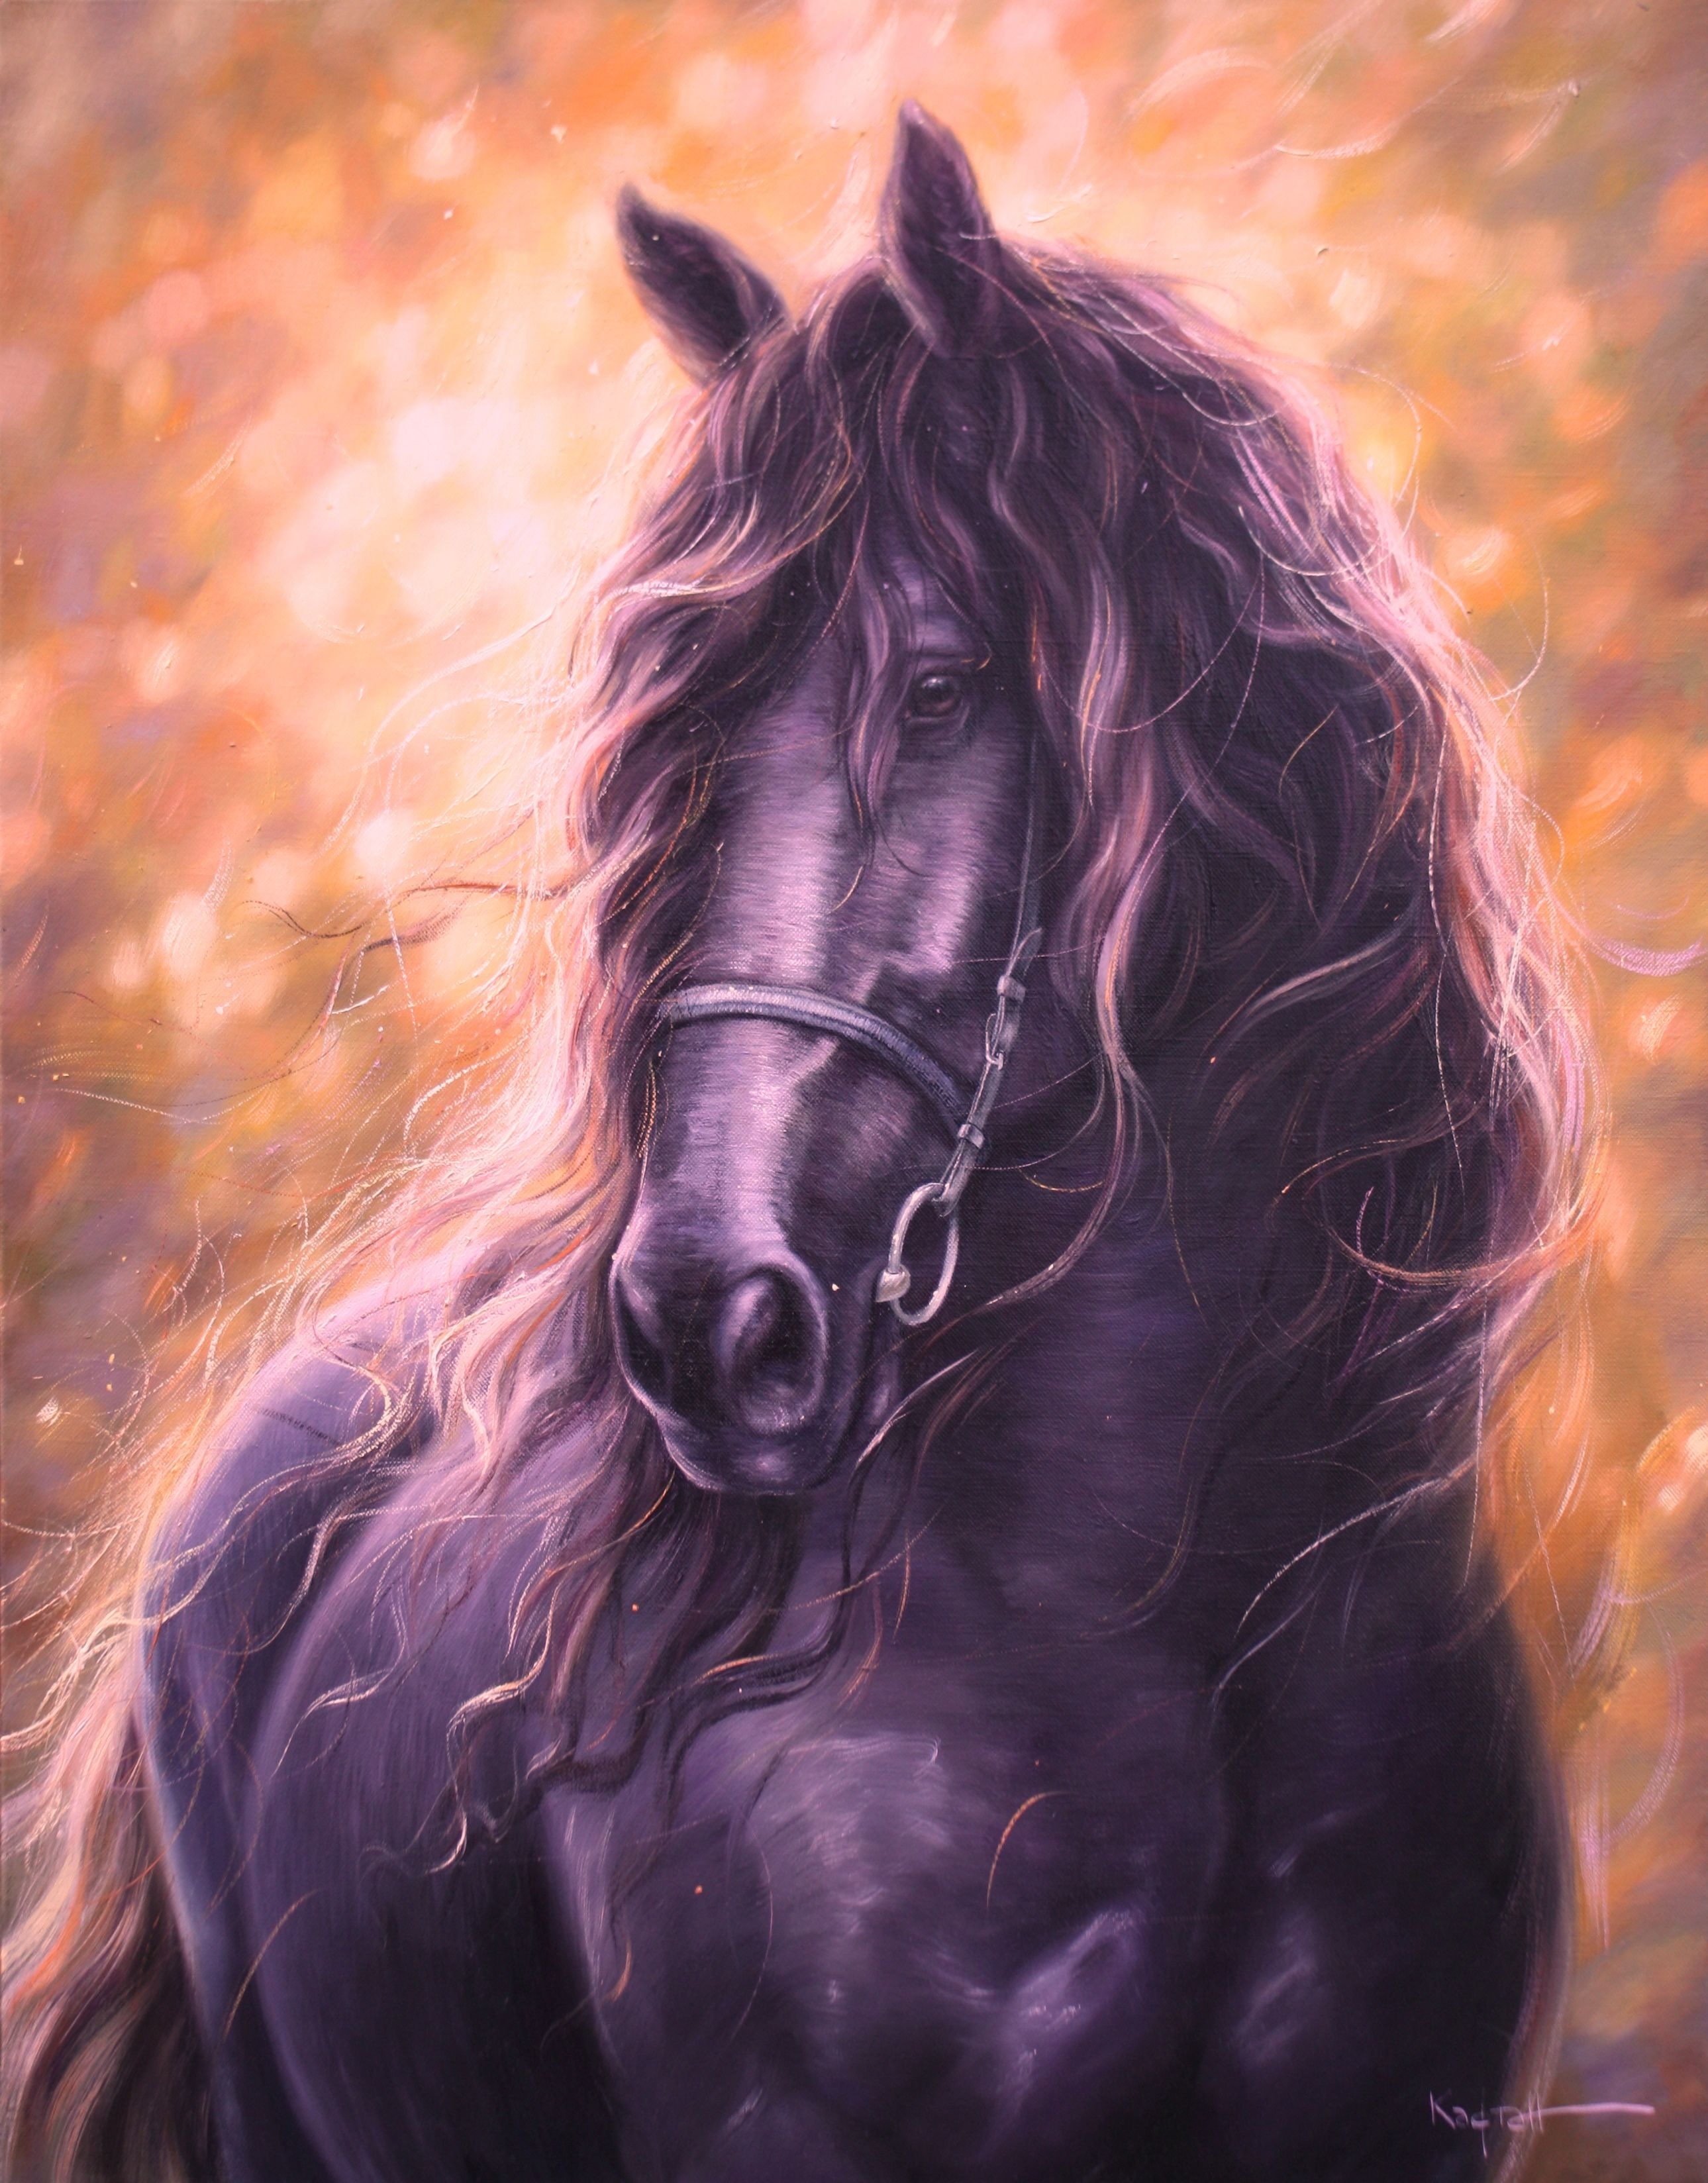 Wild Horse Oil Painting Animals Oil Painting On Canvas Etsy In 2020 Horse Oil Painting Oil Painting On Canvas Oil Painting